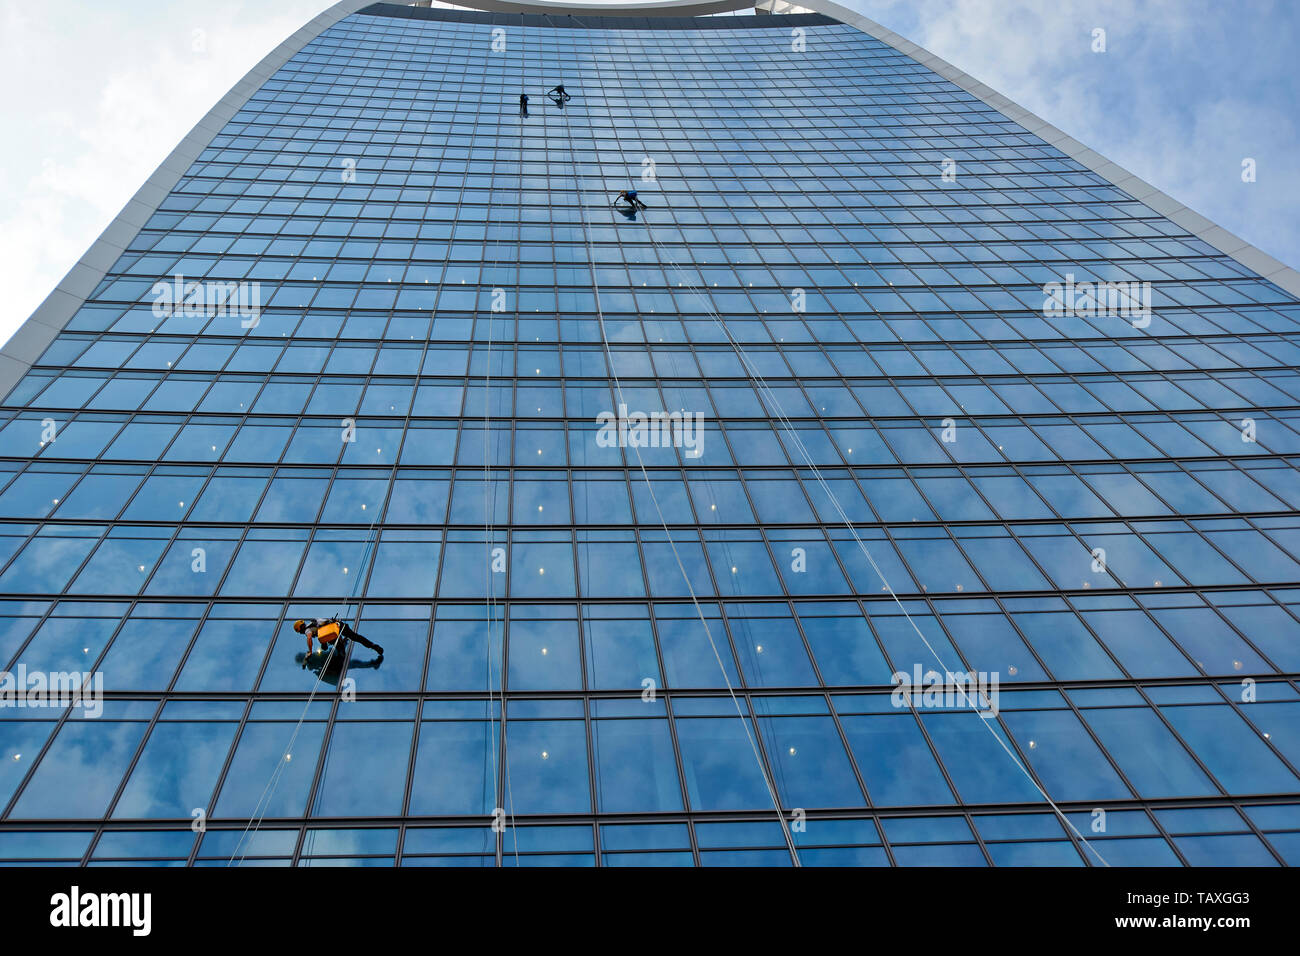 LONDON 20 FENCHURCH STREET THE WALKIE TALKIE SKYSCRAPER MEN ABSEILING AND CLEANING THE WINDOWS Stock Photo